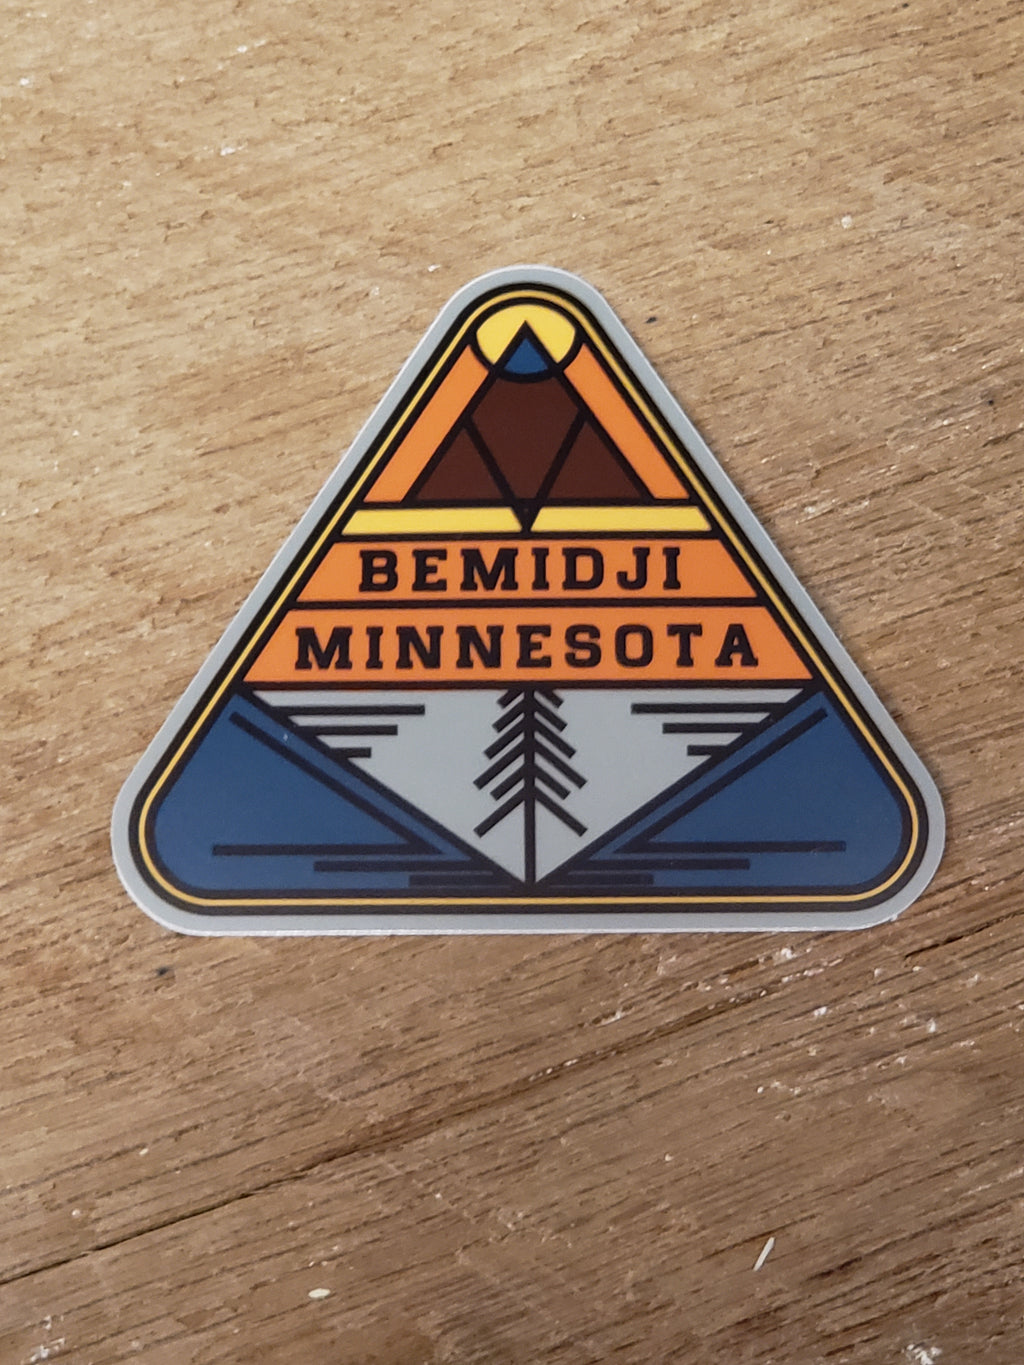 Bemidji, MN Triangle - Decal